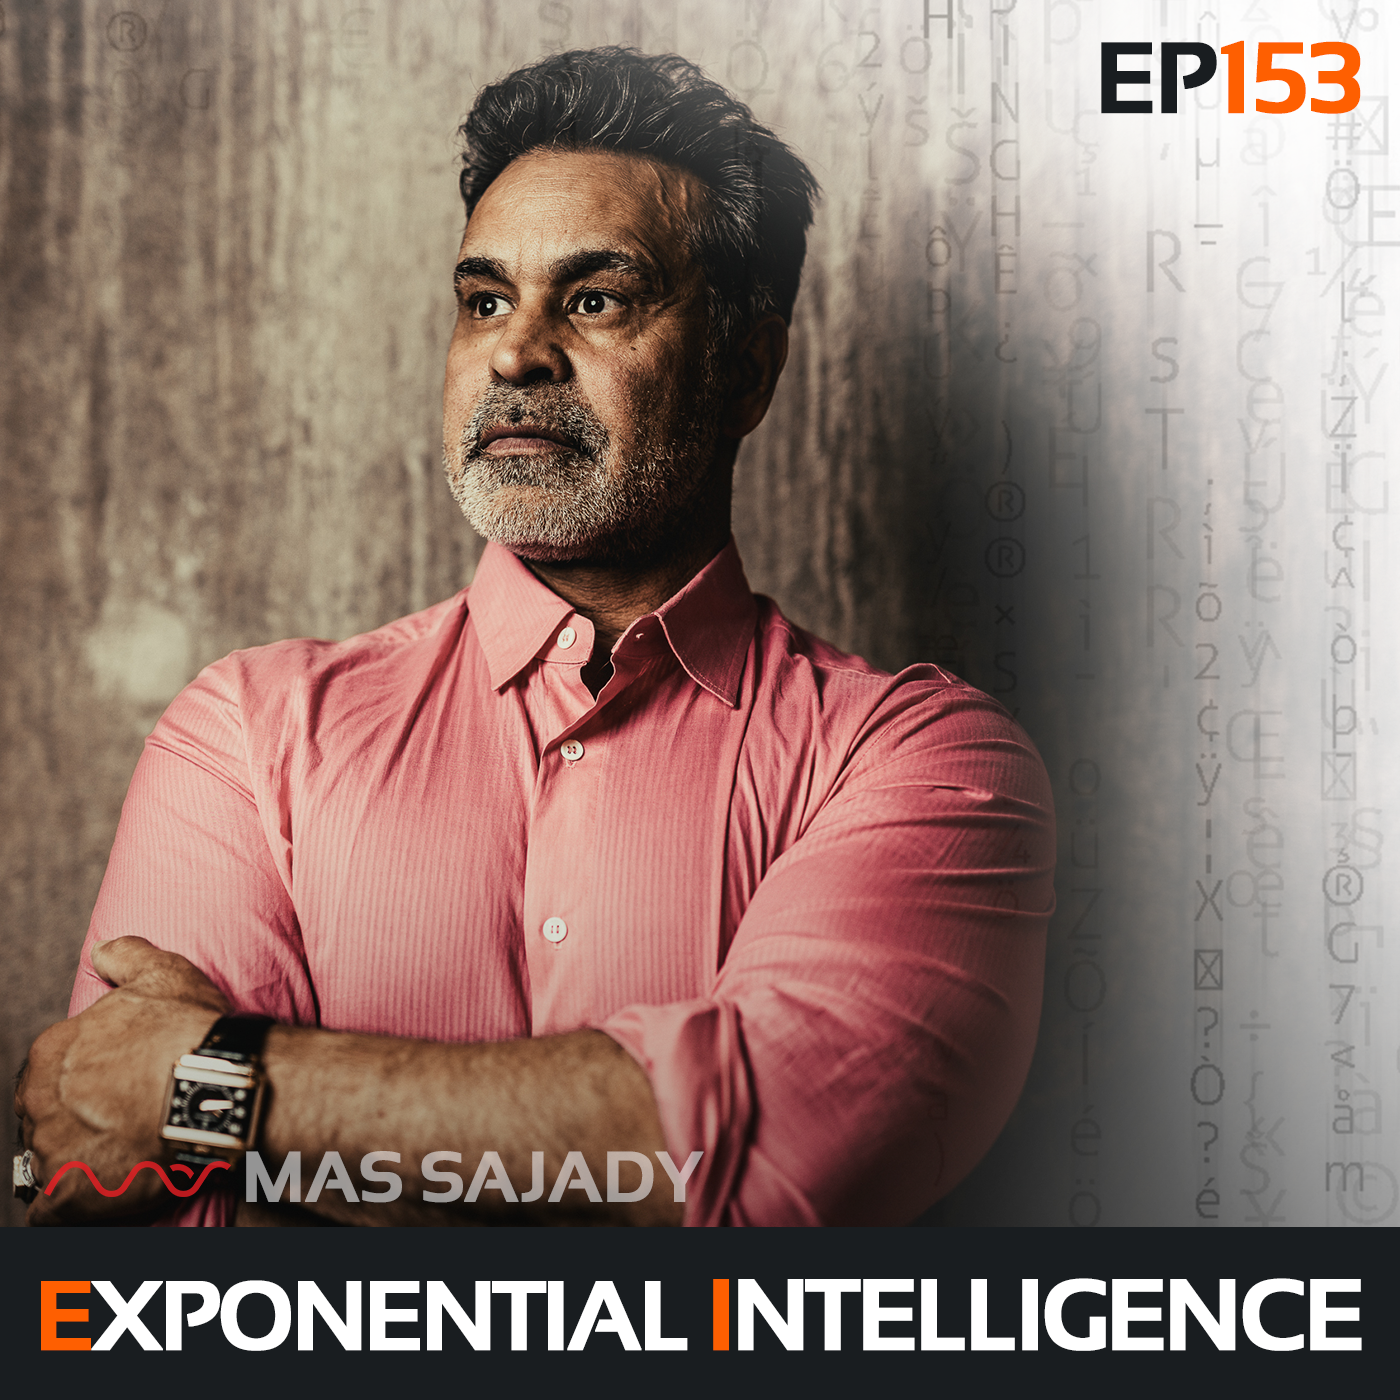 mas-sajady-exponential-intelligence-podcast-153-science-of-spirituality-part-1.png